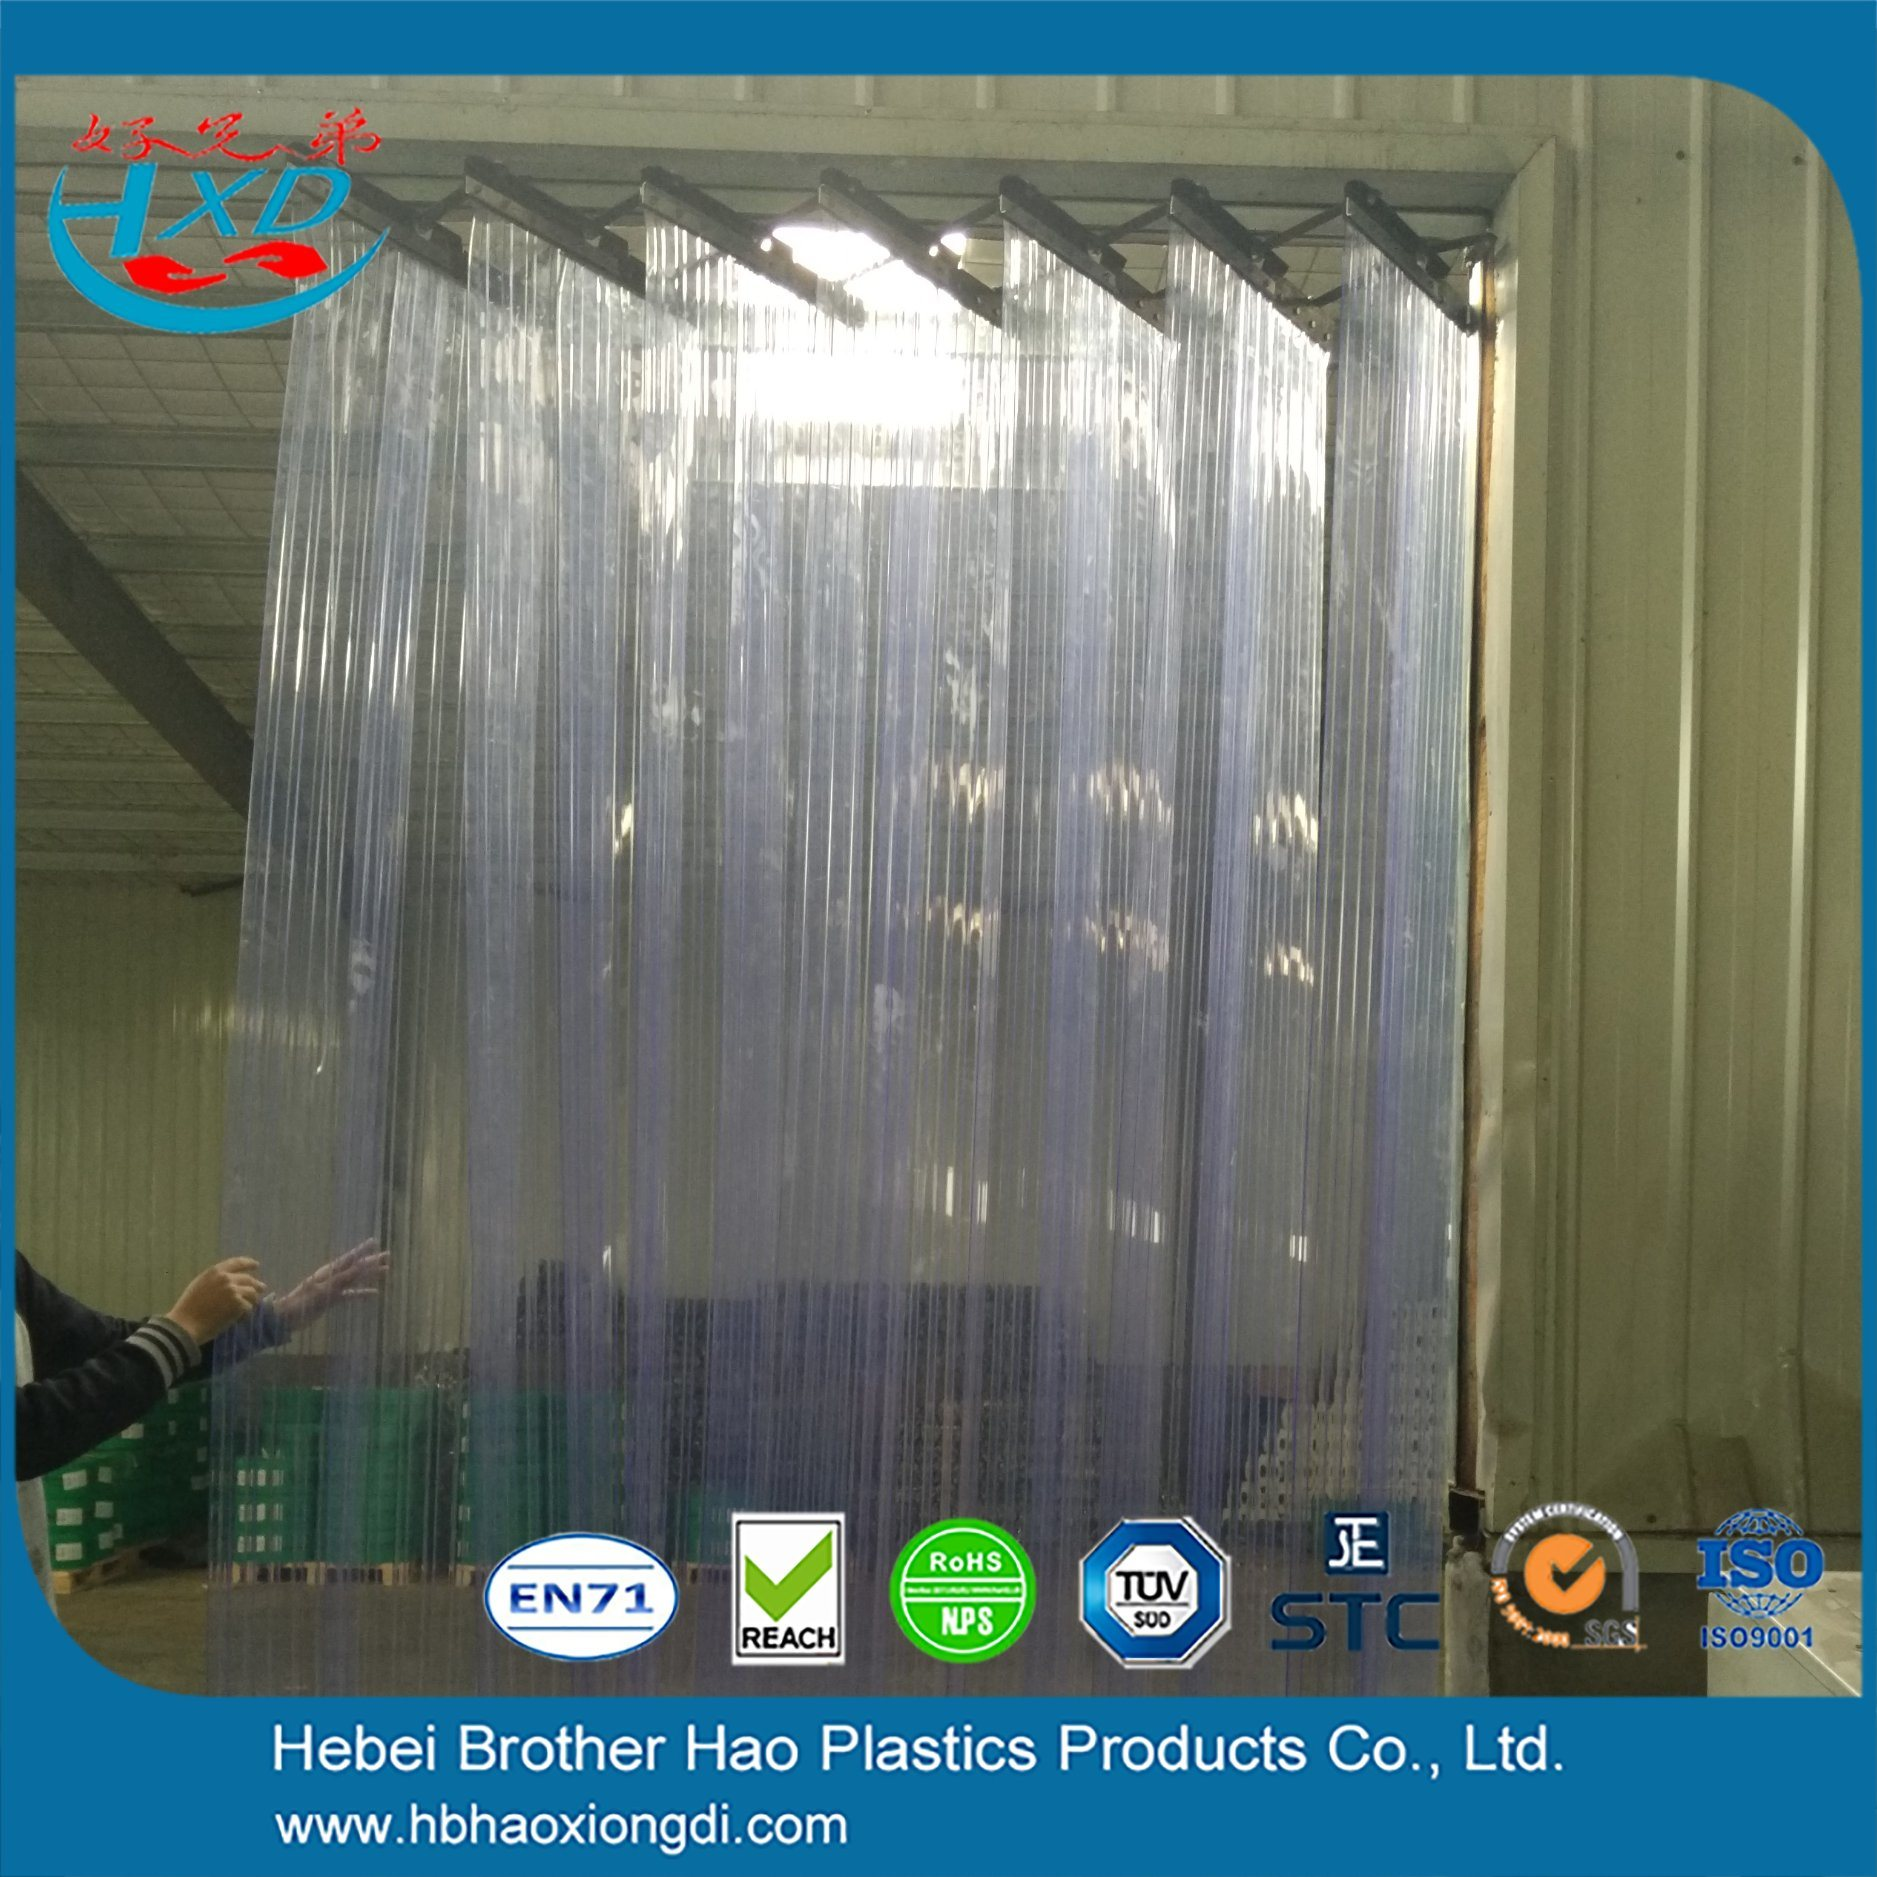 westwardwelding staggering curtain of reels retractable stripswelding photo drake emily ideas with screens pulse welding frames full and greenwelding curtains size